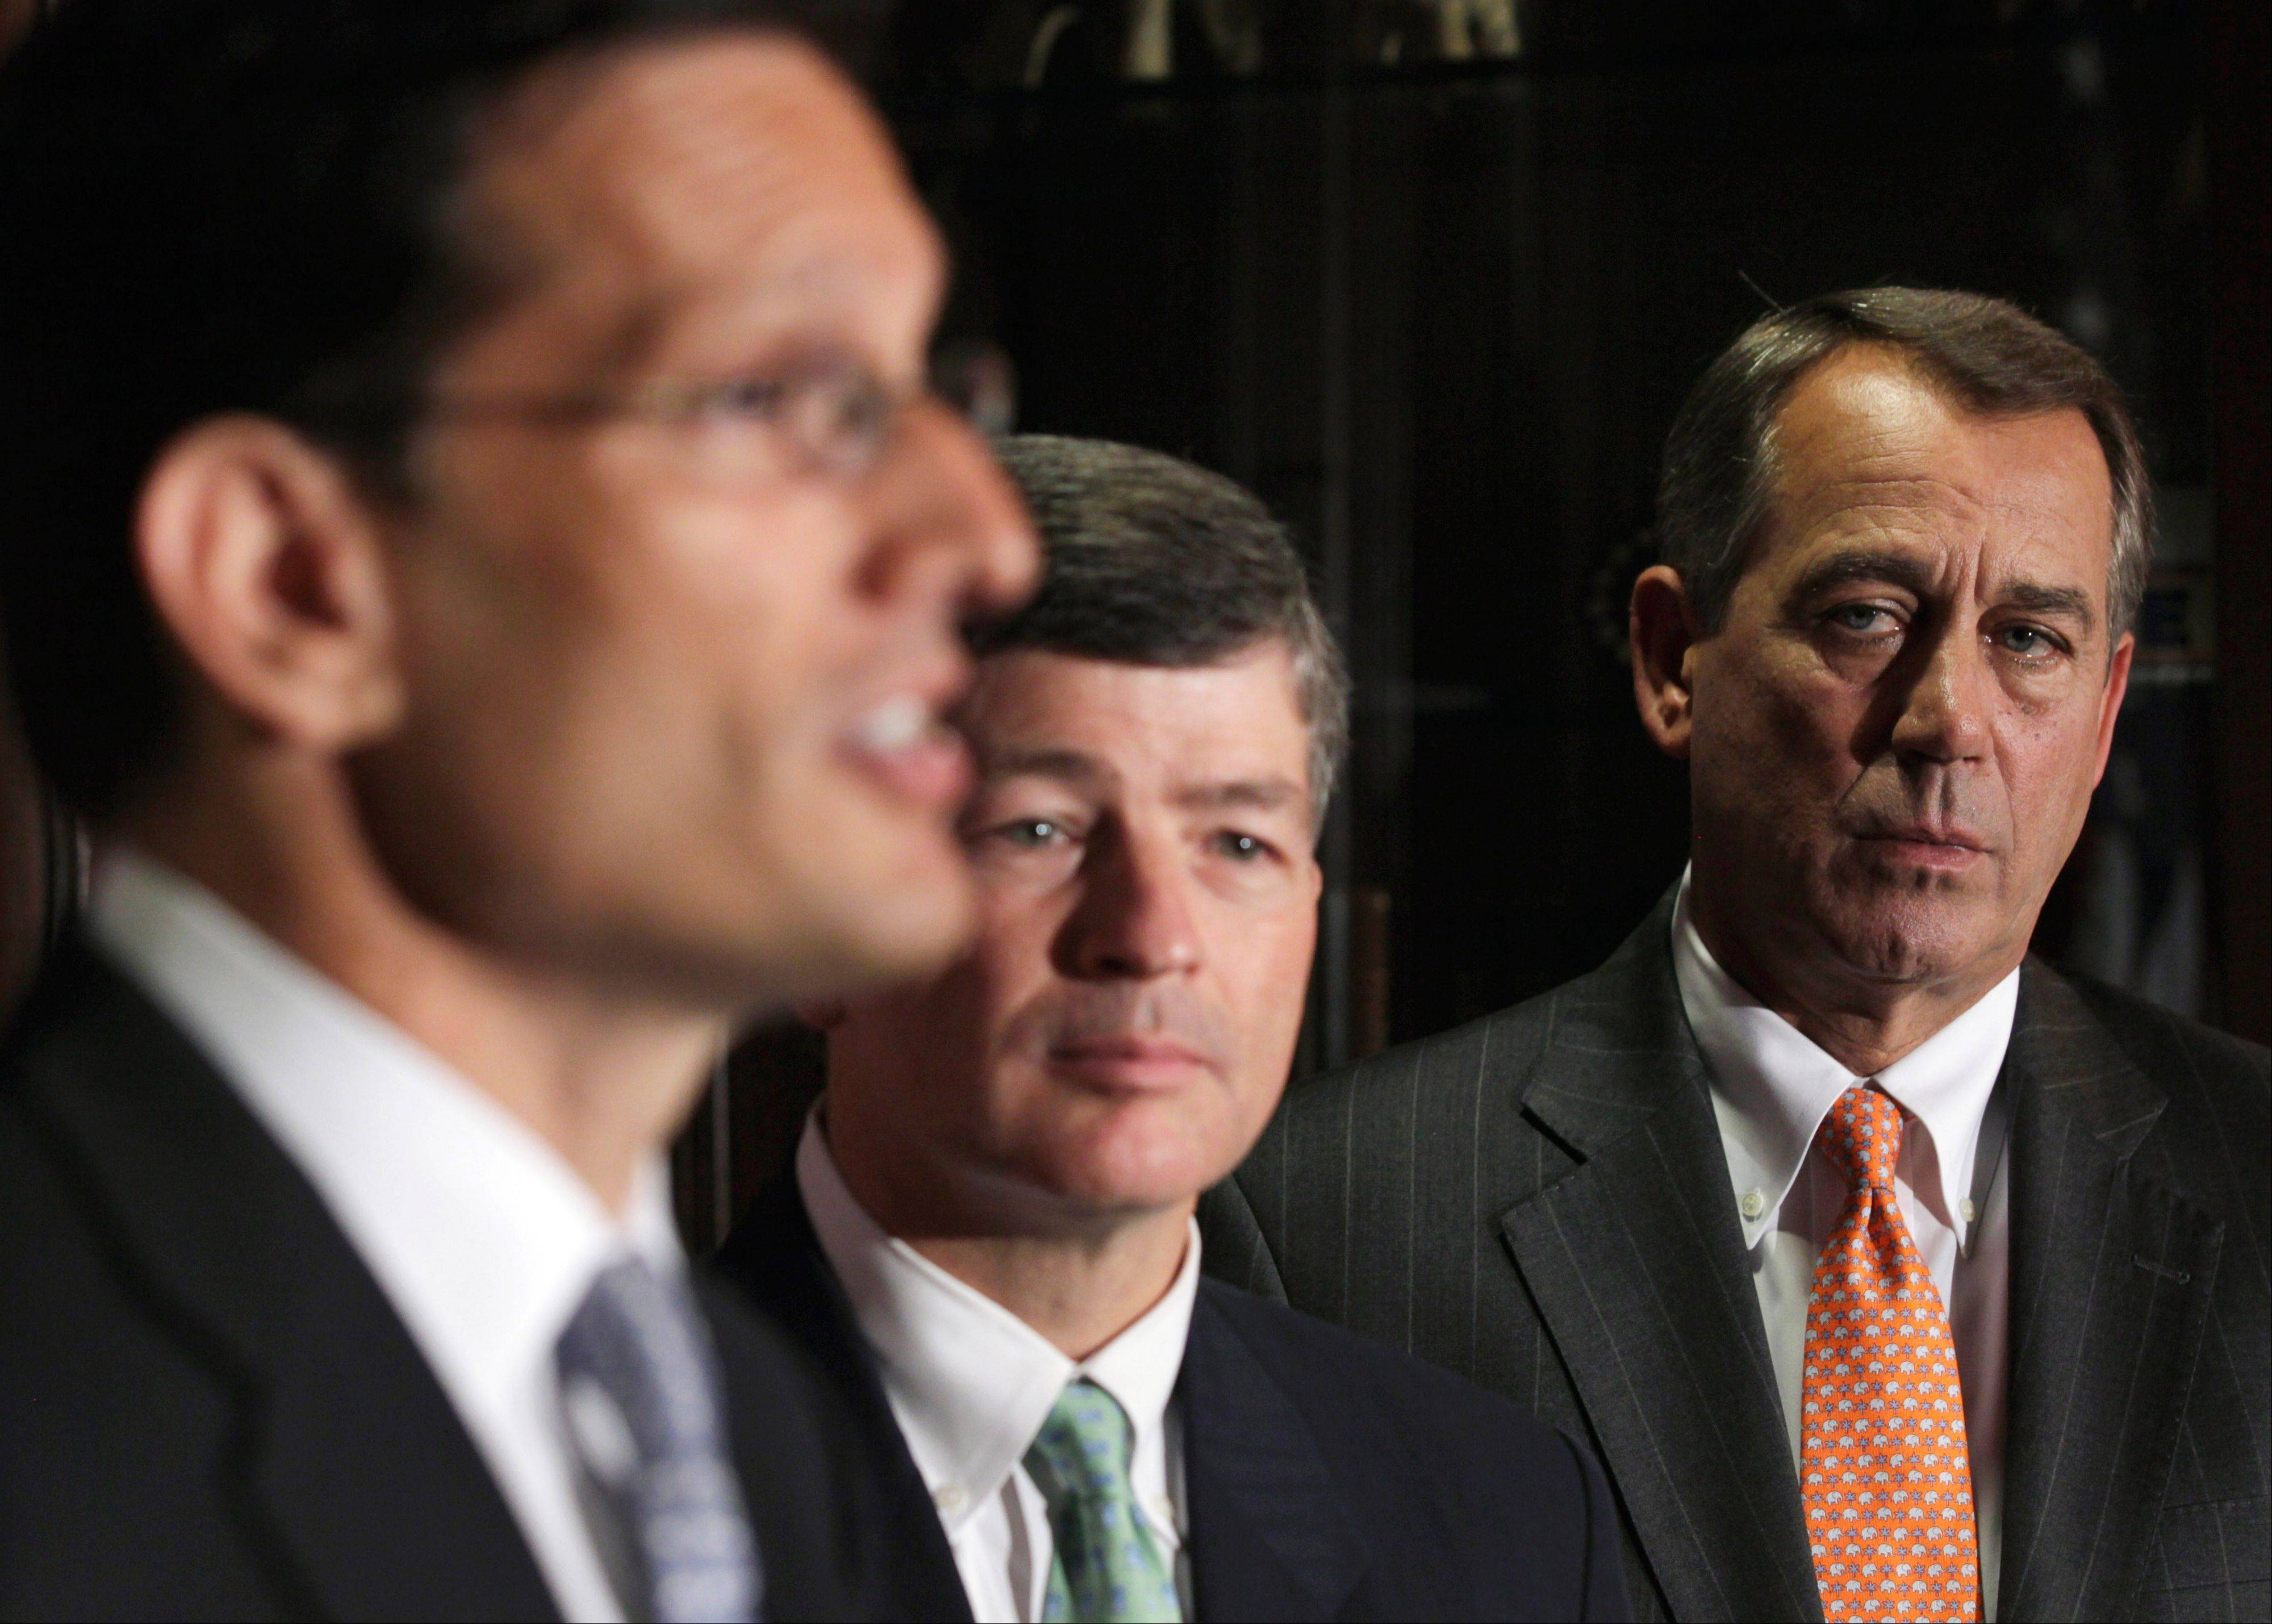 House Speaker John Boehner of Ohio, right, and Republican Conference Chairman Rep. Jeb Hensarling, R-Texas, center, listen as House Majority Leader Eric Cantor of Virginia, left, speaks during a news conference at The Republican National Committee on Capitol Hill in Washington.